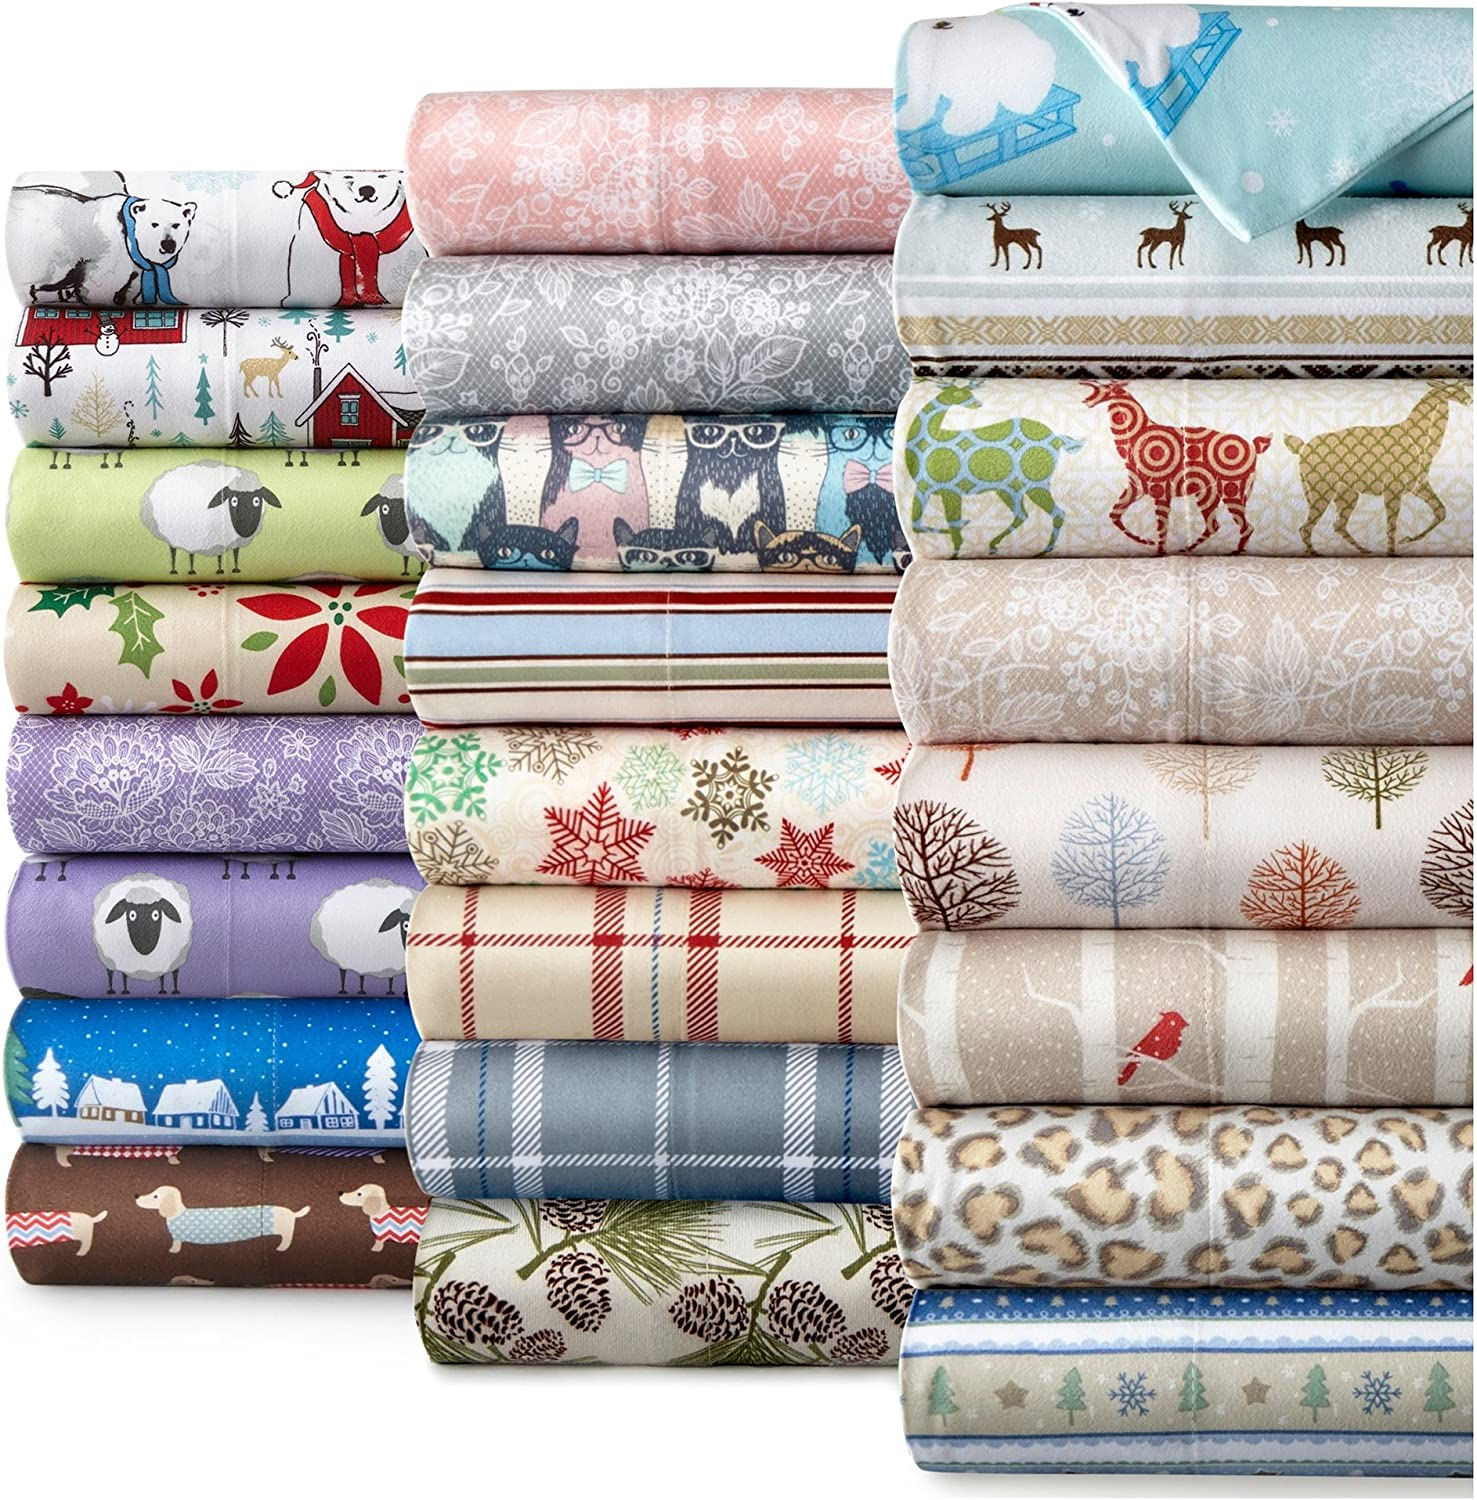 Shavel Home Products Micro Flannel Printed Sheet Set, King, Polar Bears